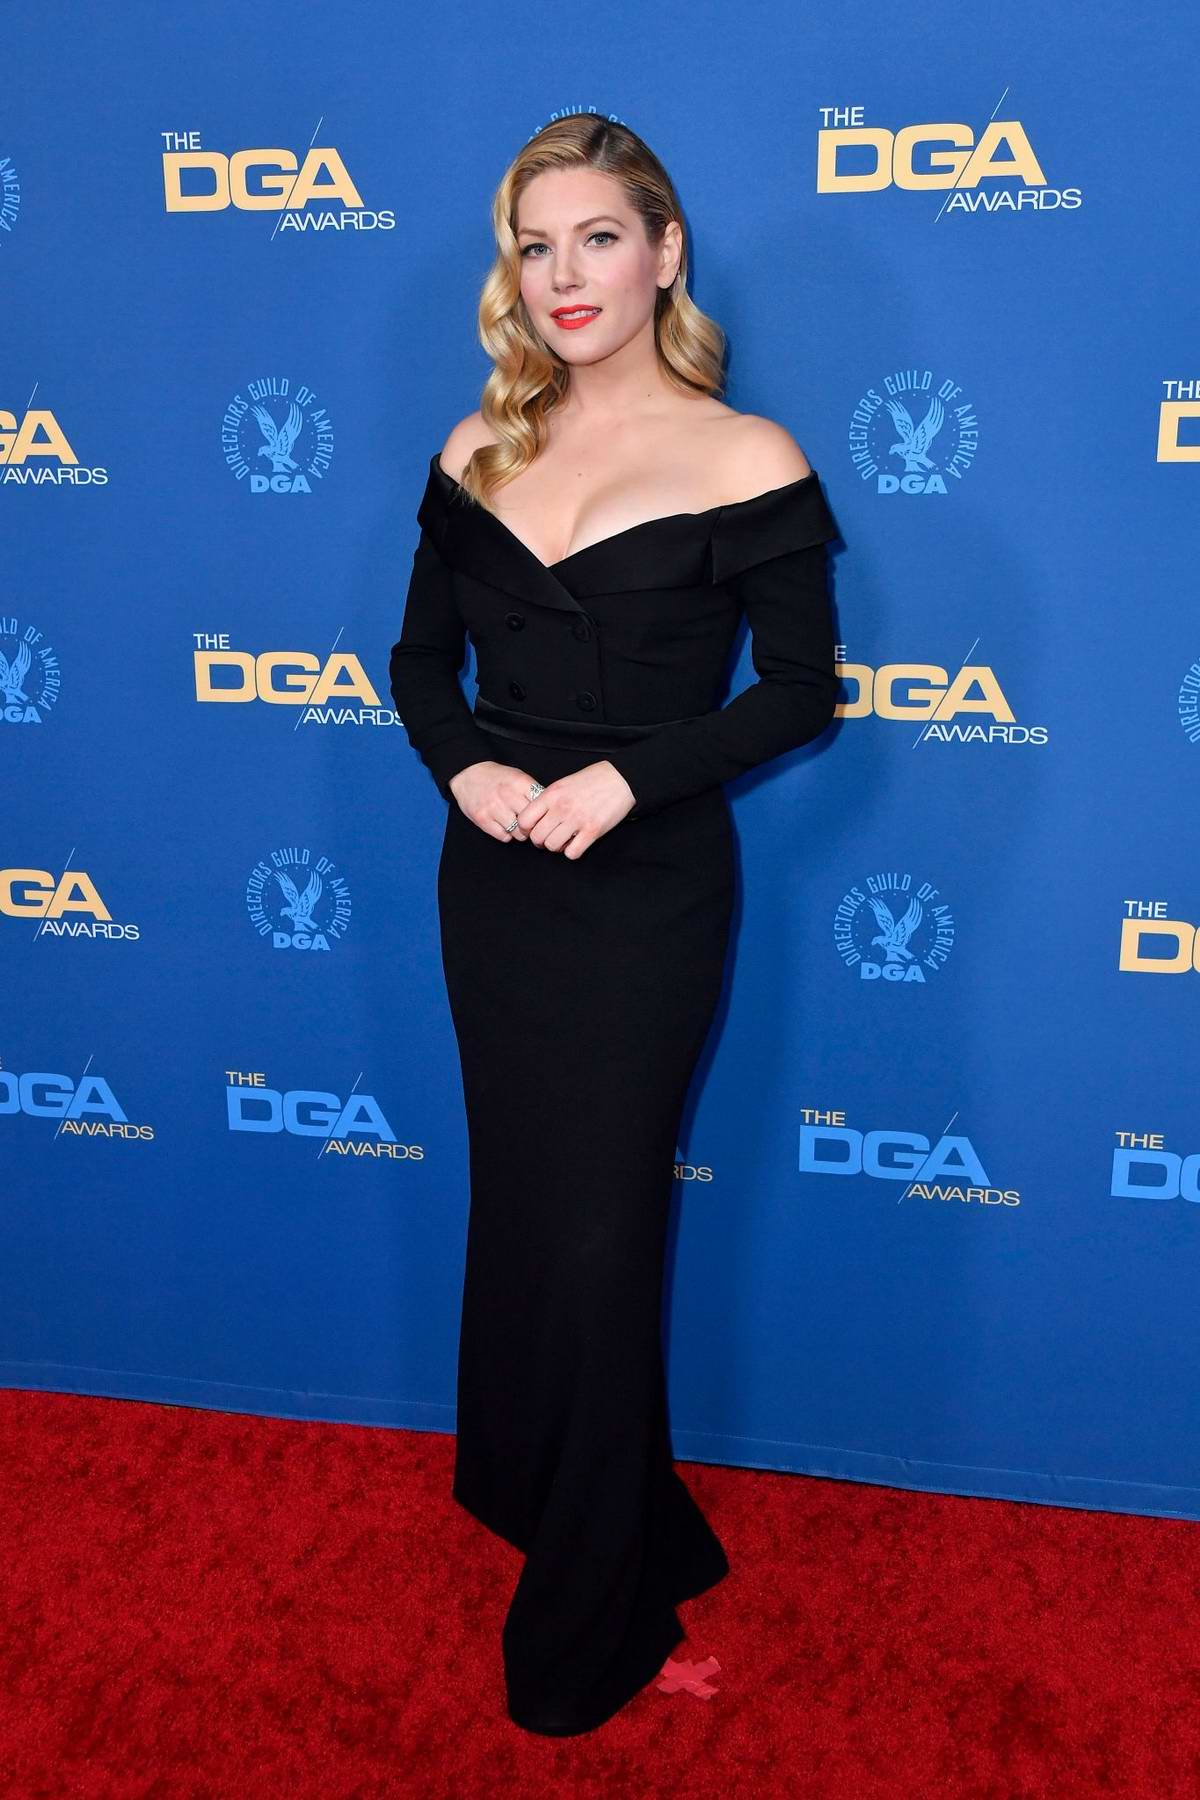 Katheryn Winnick attends the 72nd Annual Directors Guild of America Awards in Los Angeles